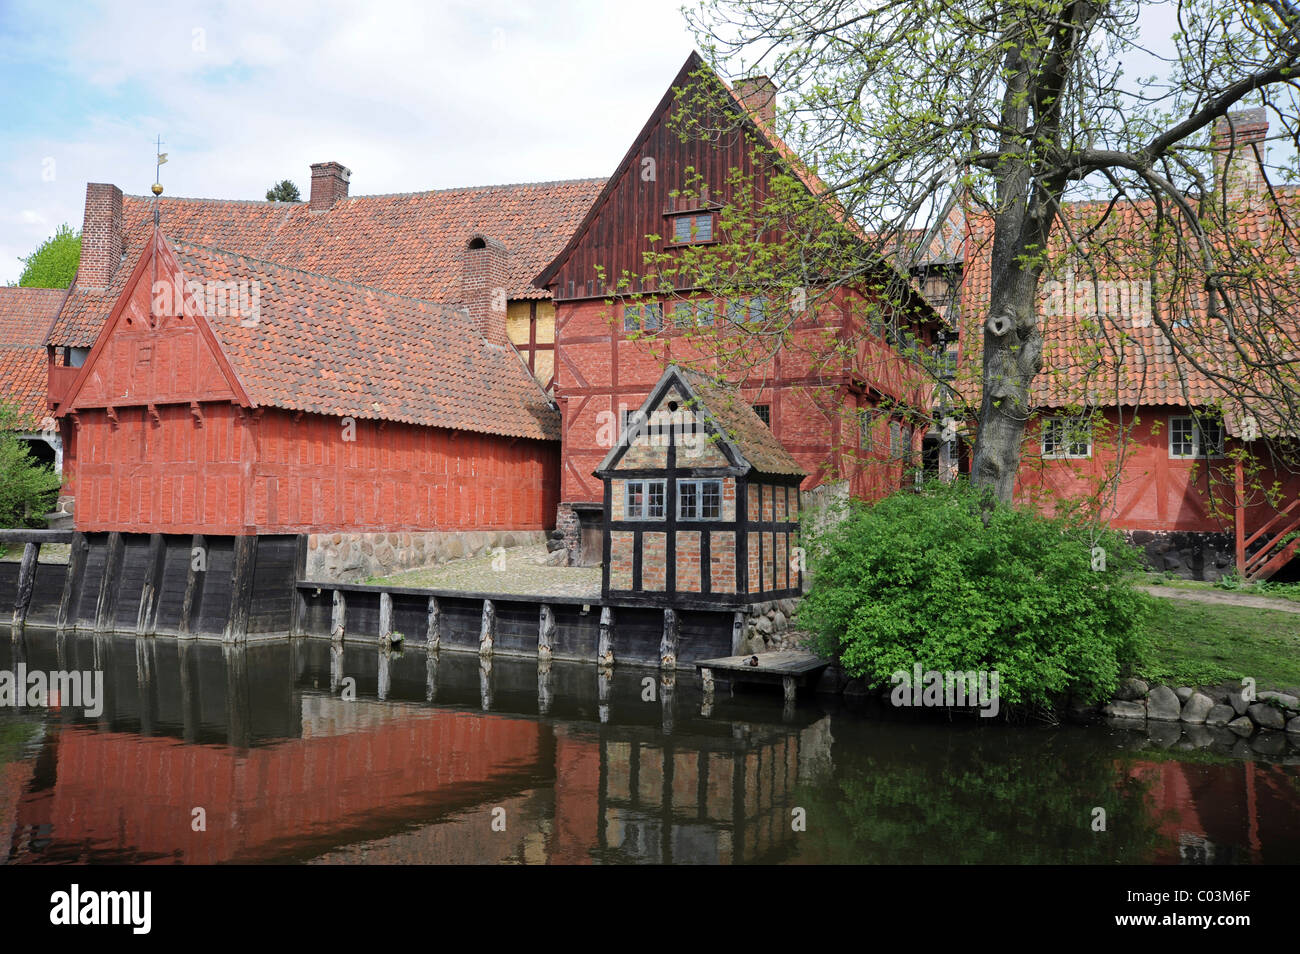 Open-air museum, the Old Town or Den Gamle By, Århus or Aarhus, Jutland, Denmark, Europe Stock Photo